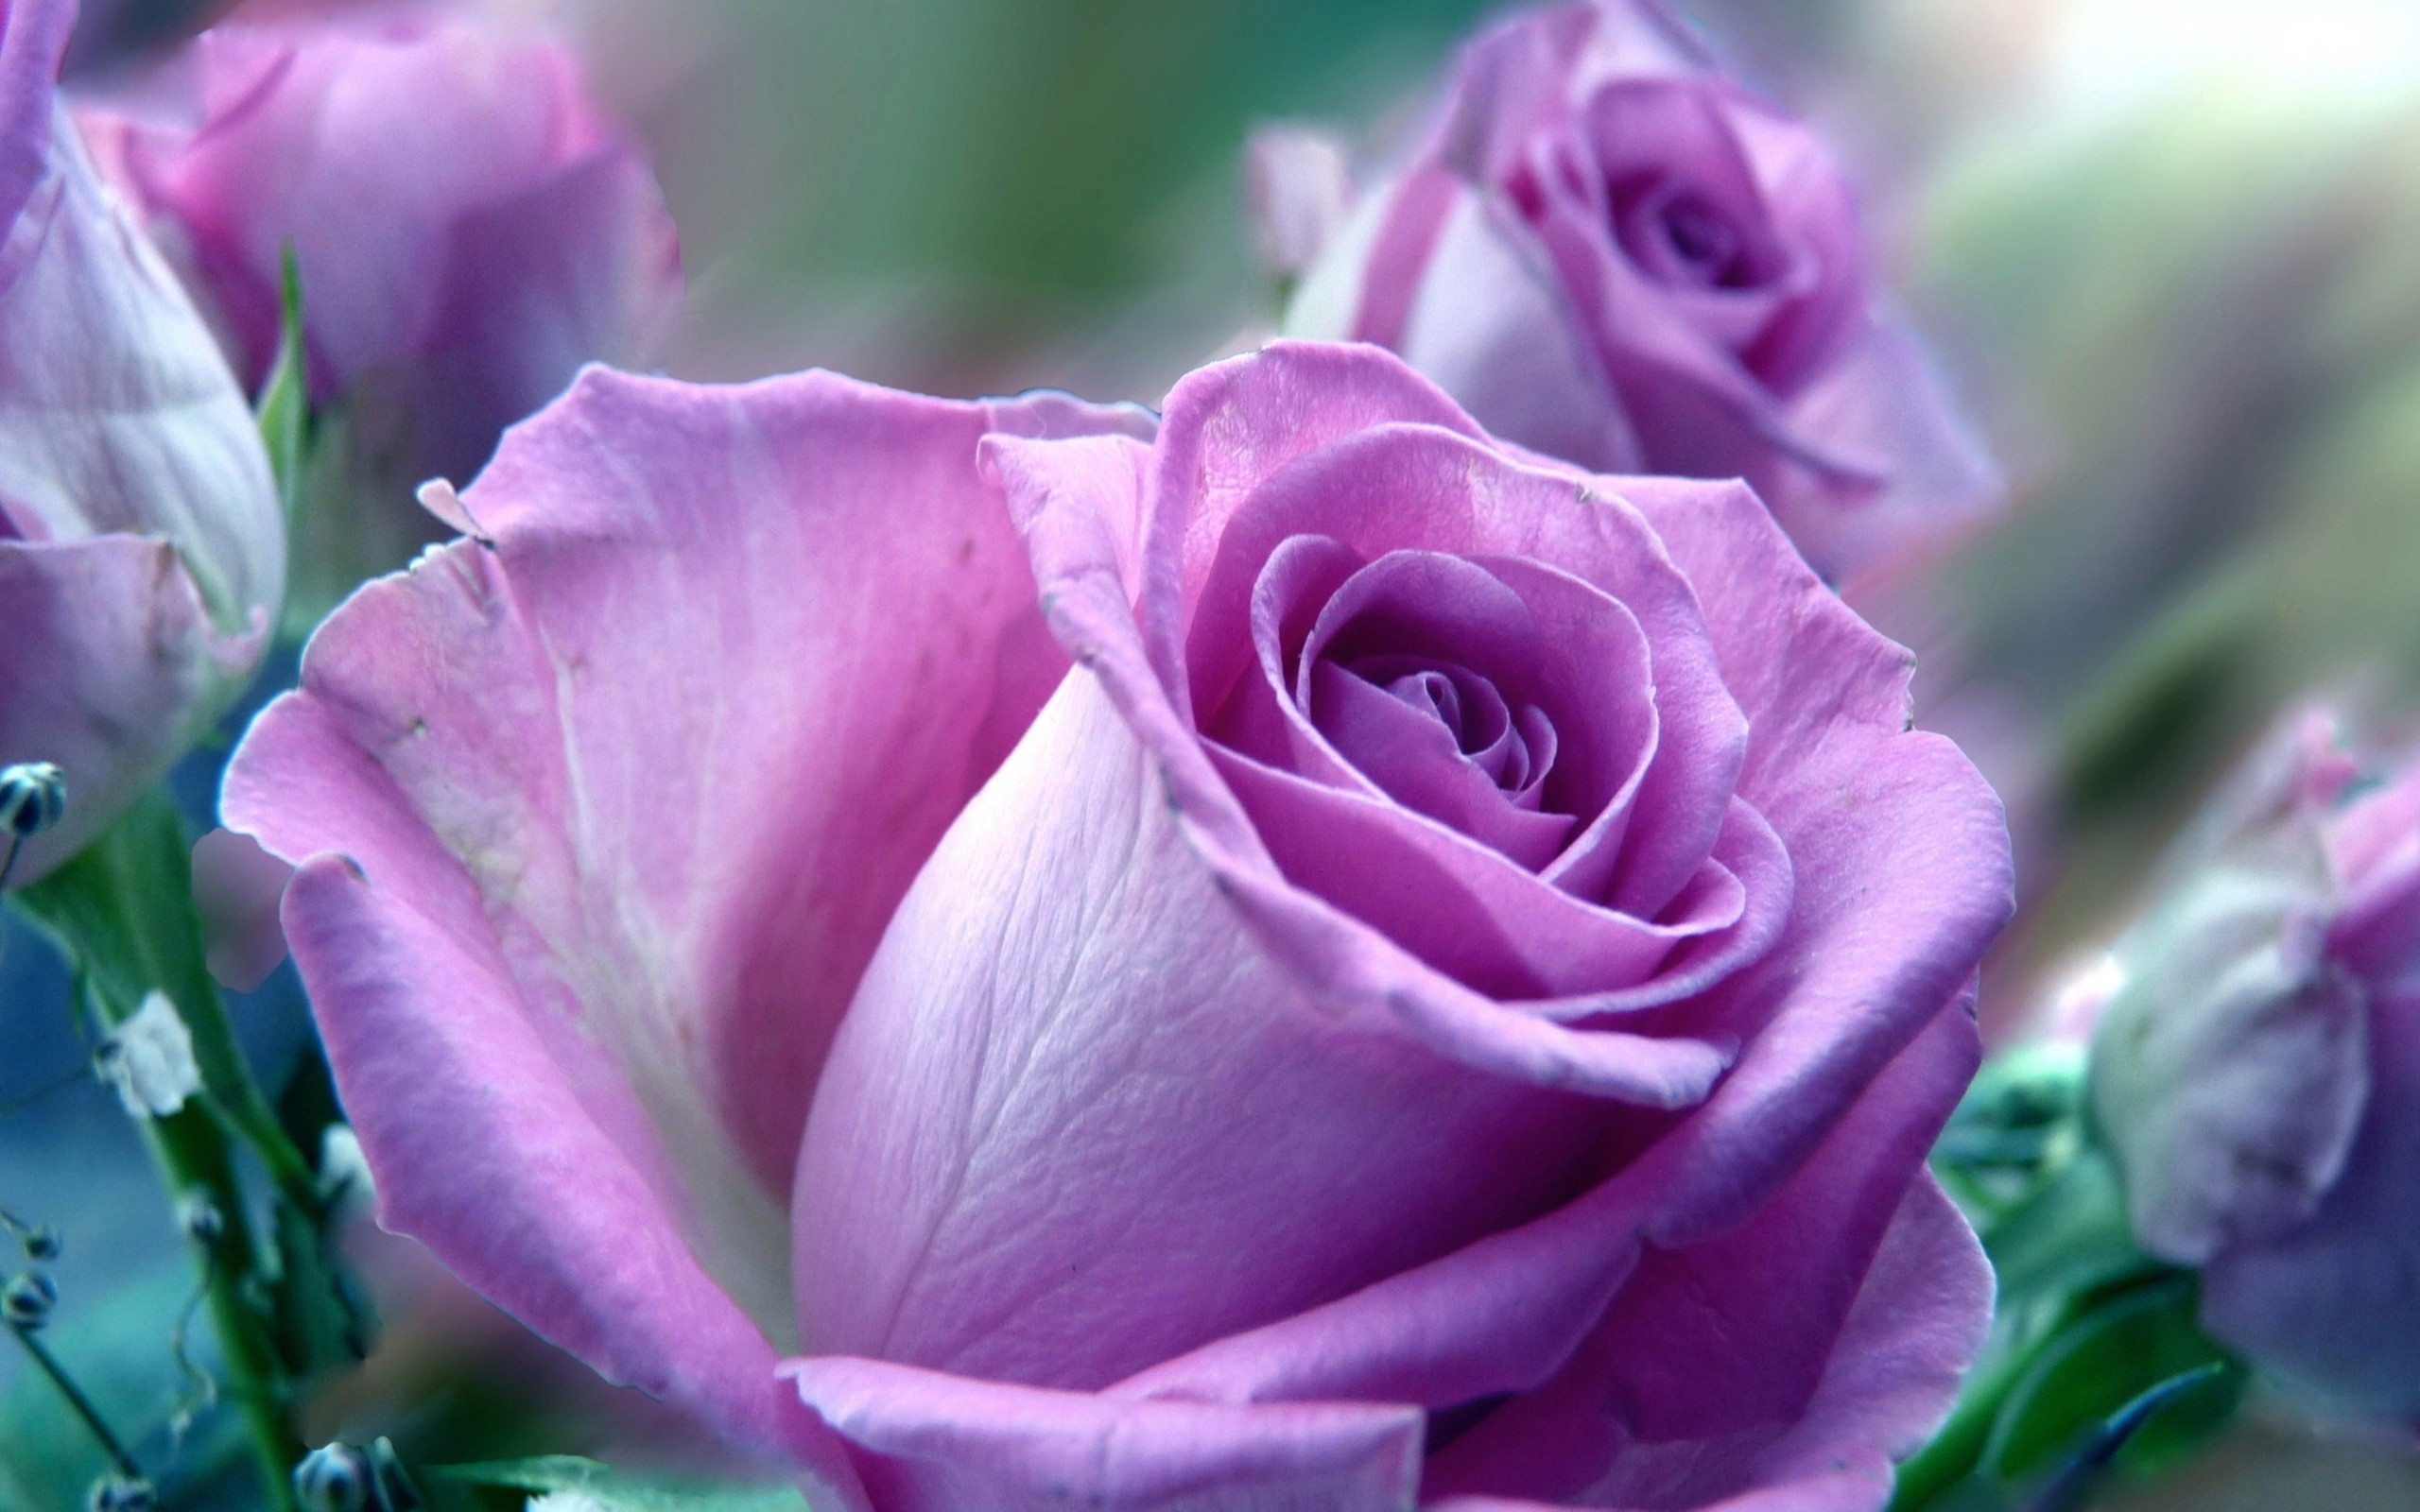 2560x1600 Original Resolution Download 1080x1920 Violet Rose Wallpapers